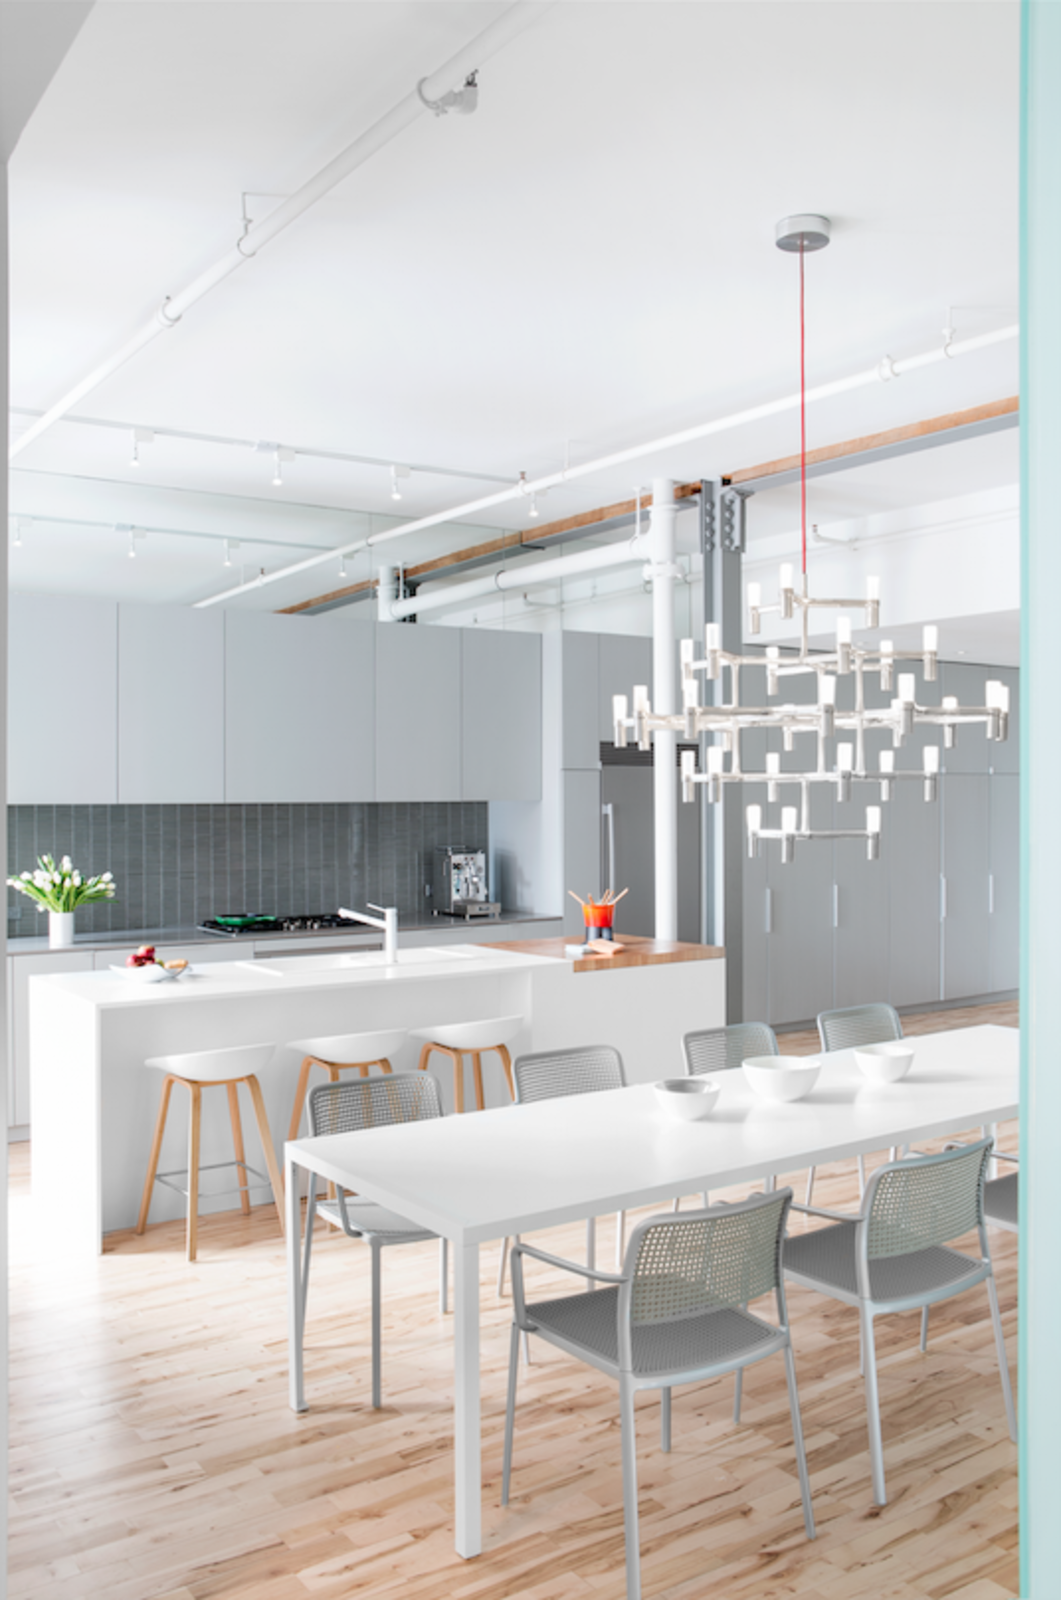 The space was reoriented in order to accommodate a third bedroom for the residents' second child. The adjustment required reducing the size of one of the existing bedrooms and relocating the kitchen, which now is an open-plan space next to the living room. A Major Crown chandelier by Nemo hangs above a Zeus-Noto table and Kartell chairs.  Luminous Modern Apartment in an Industrial Montreal Building by Allie Weiss